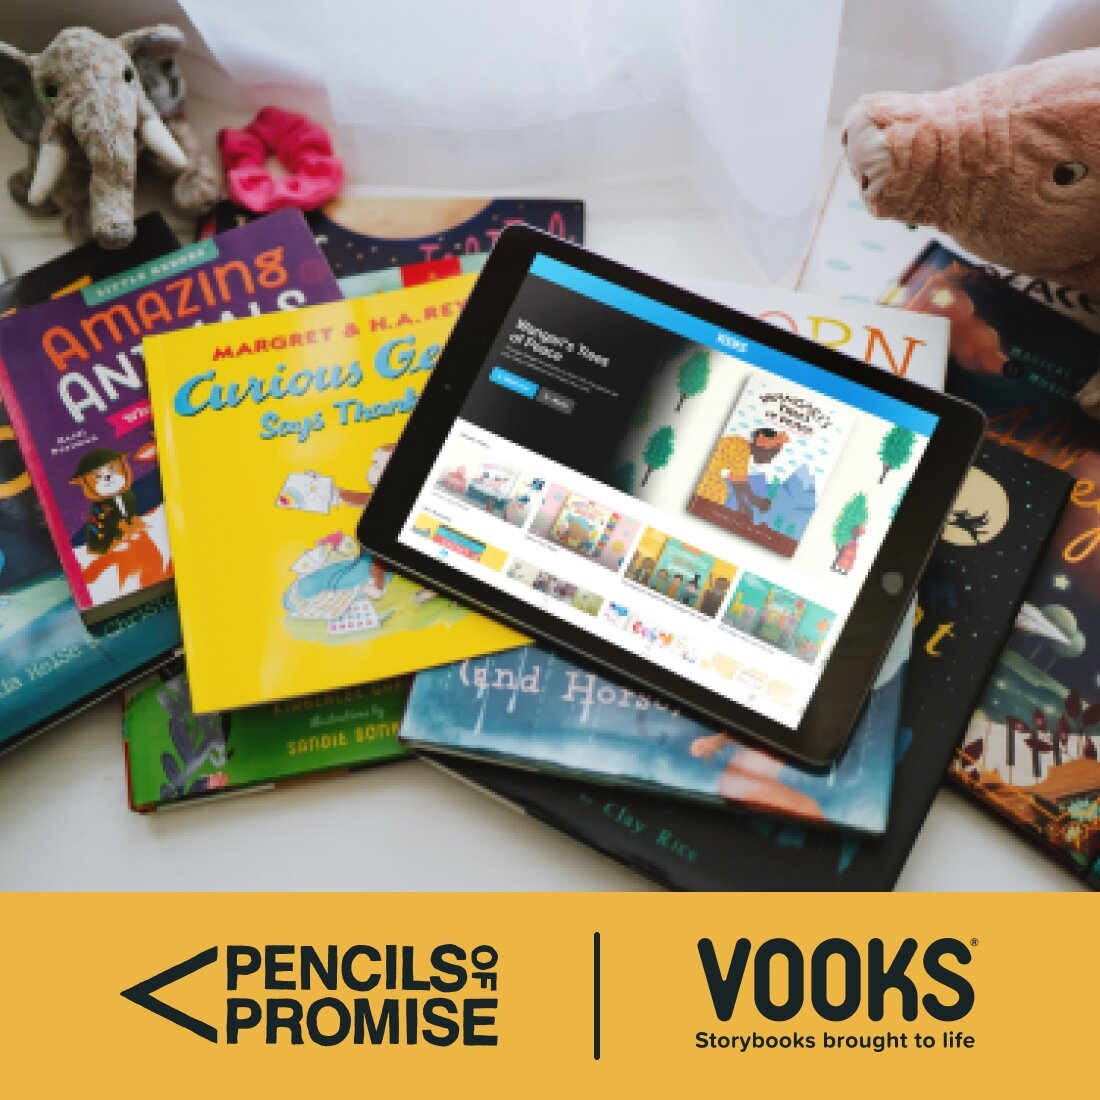 Pencils of Promise, Vooks Storybooks brought to life